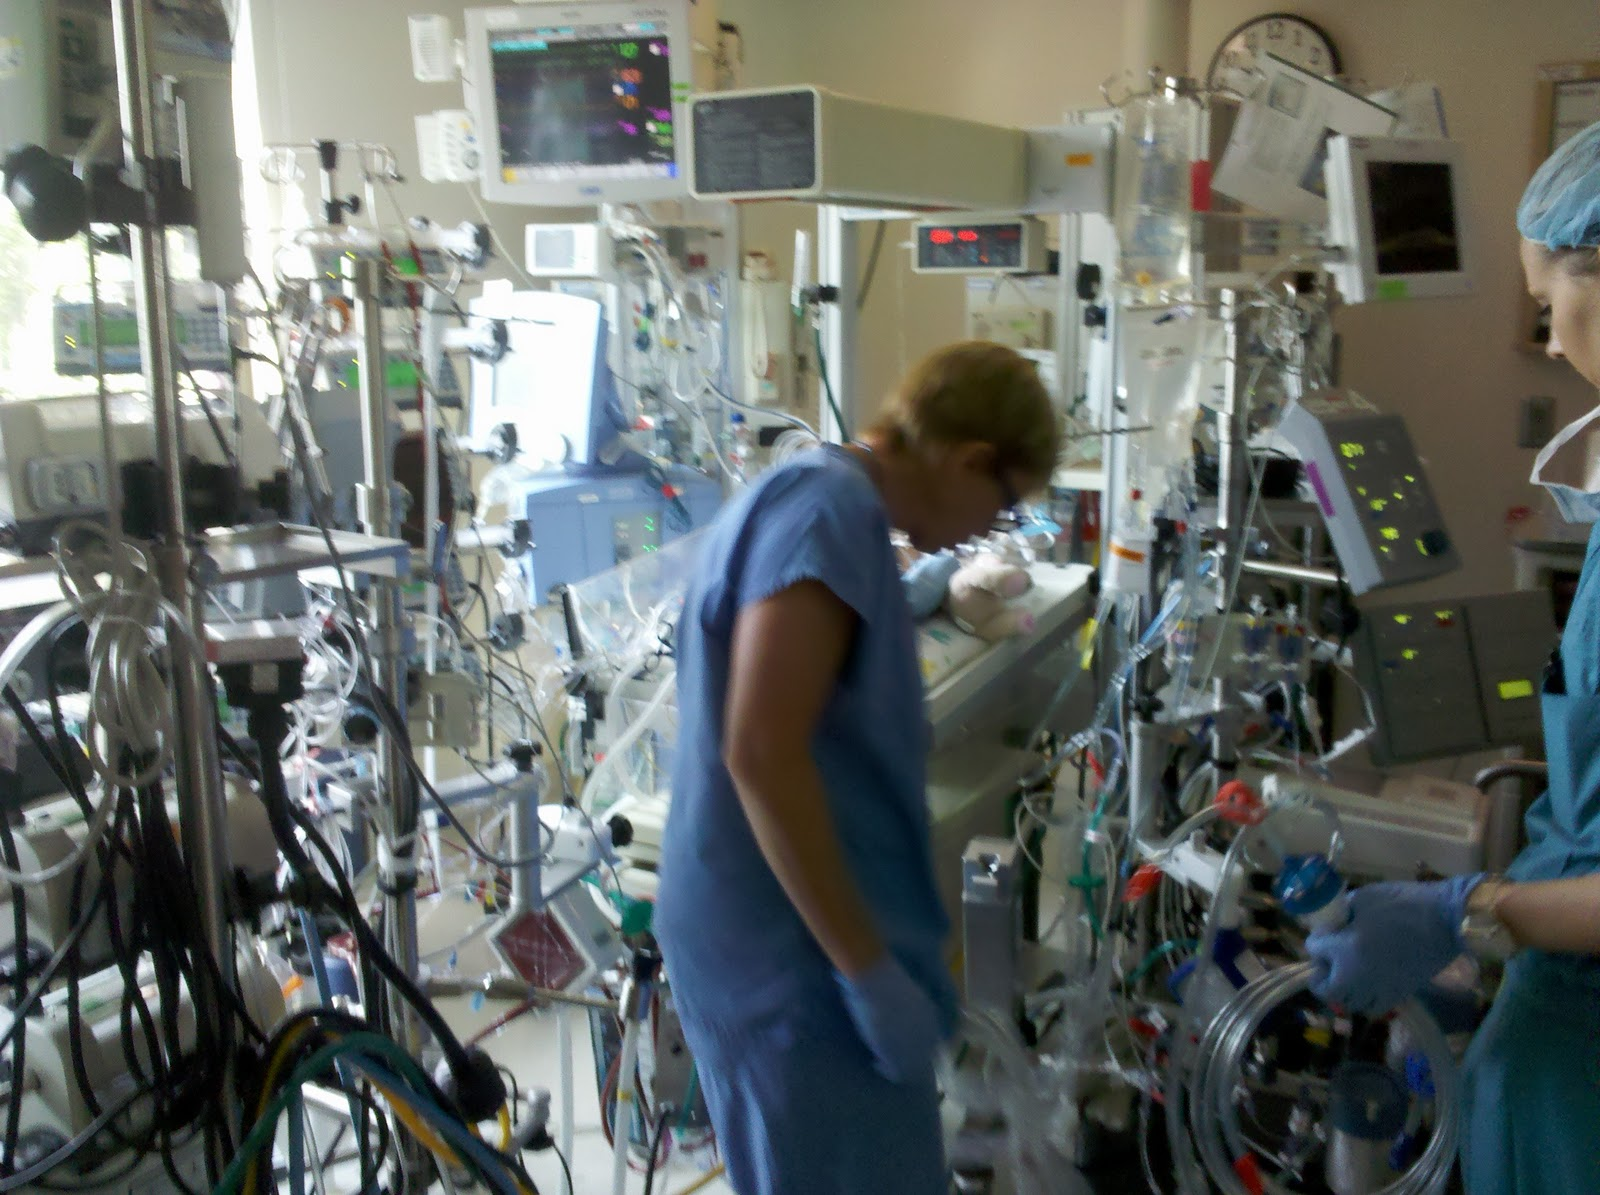 controversies in ecmo Extracorporeal membrane oxygenation (ecmo) in south africa extracorporeal membrane oxygenation (ecmo) is an advanced modality of life support for neonatal, paediatric and adult patients with cardiopulmonary compromise resistant to conventional critical care management.